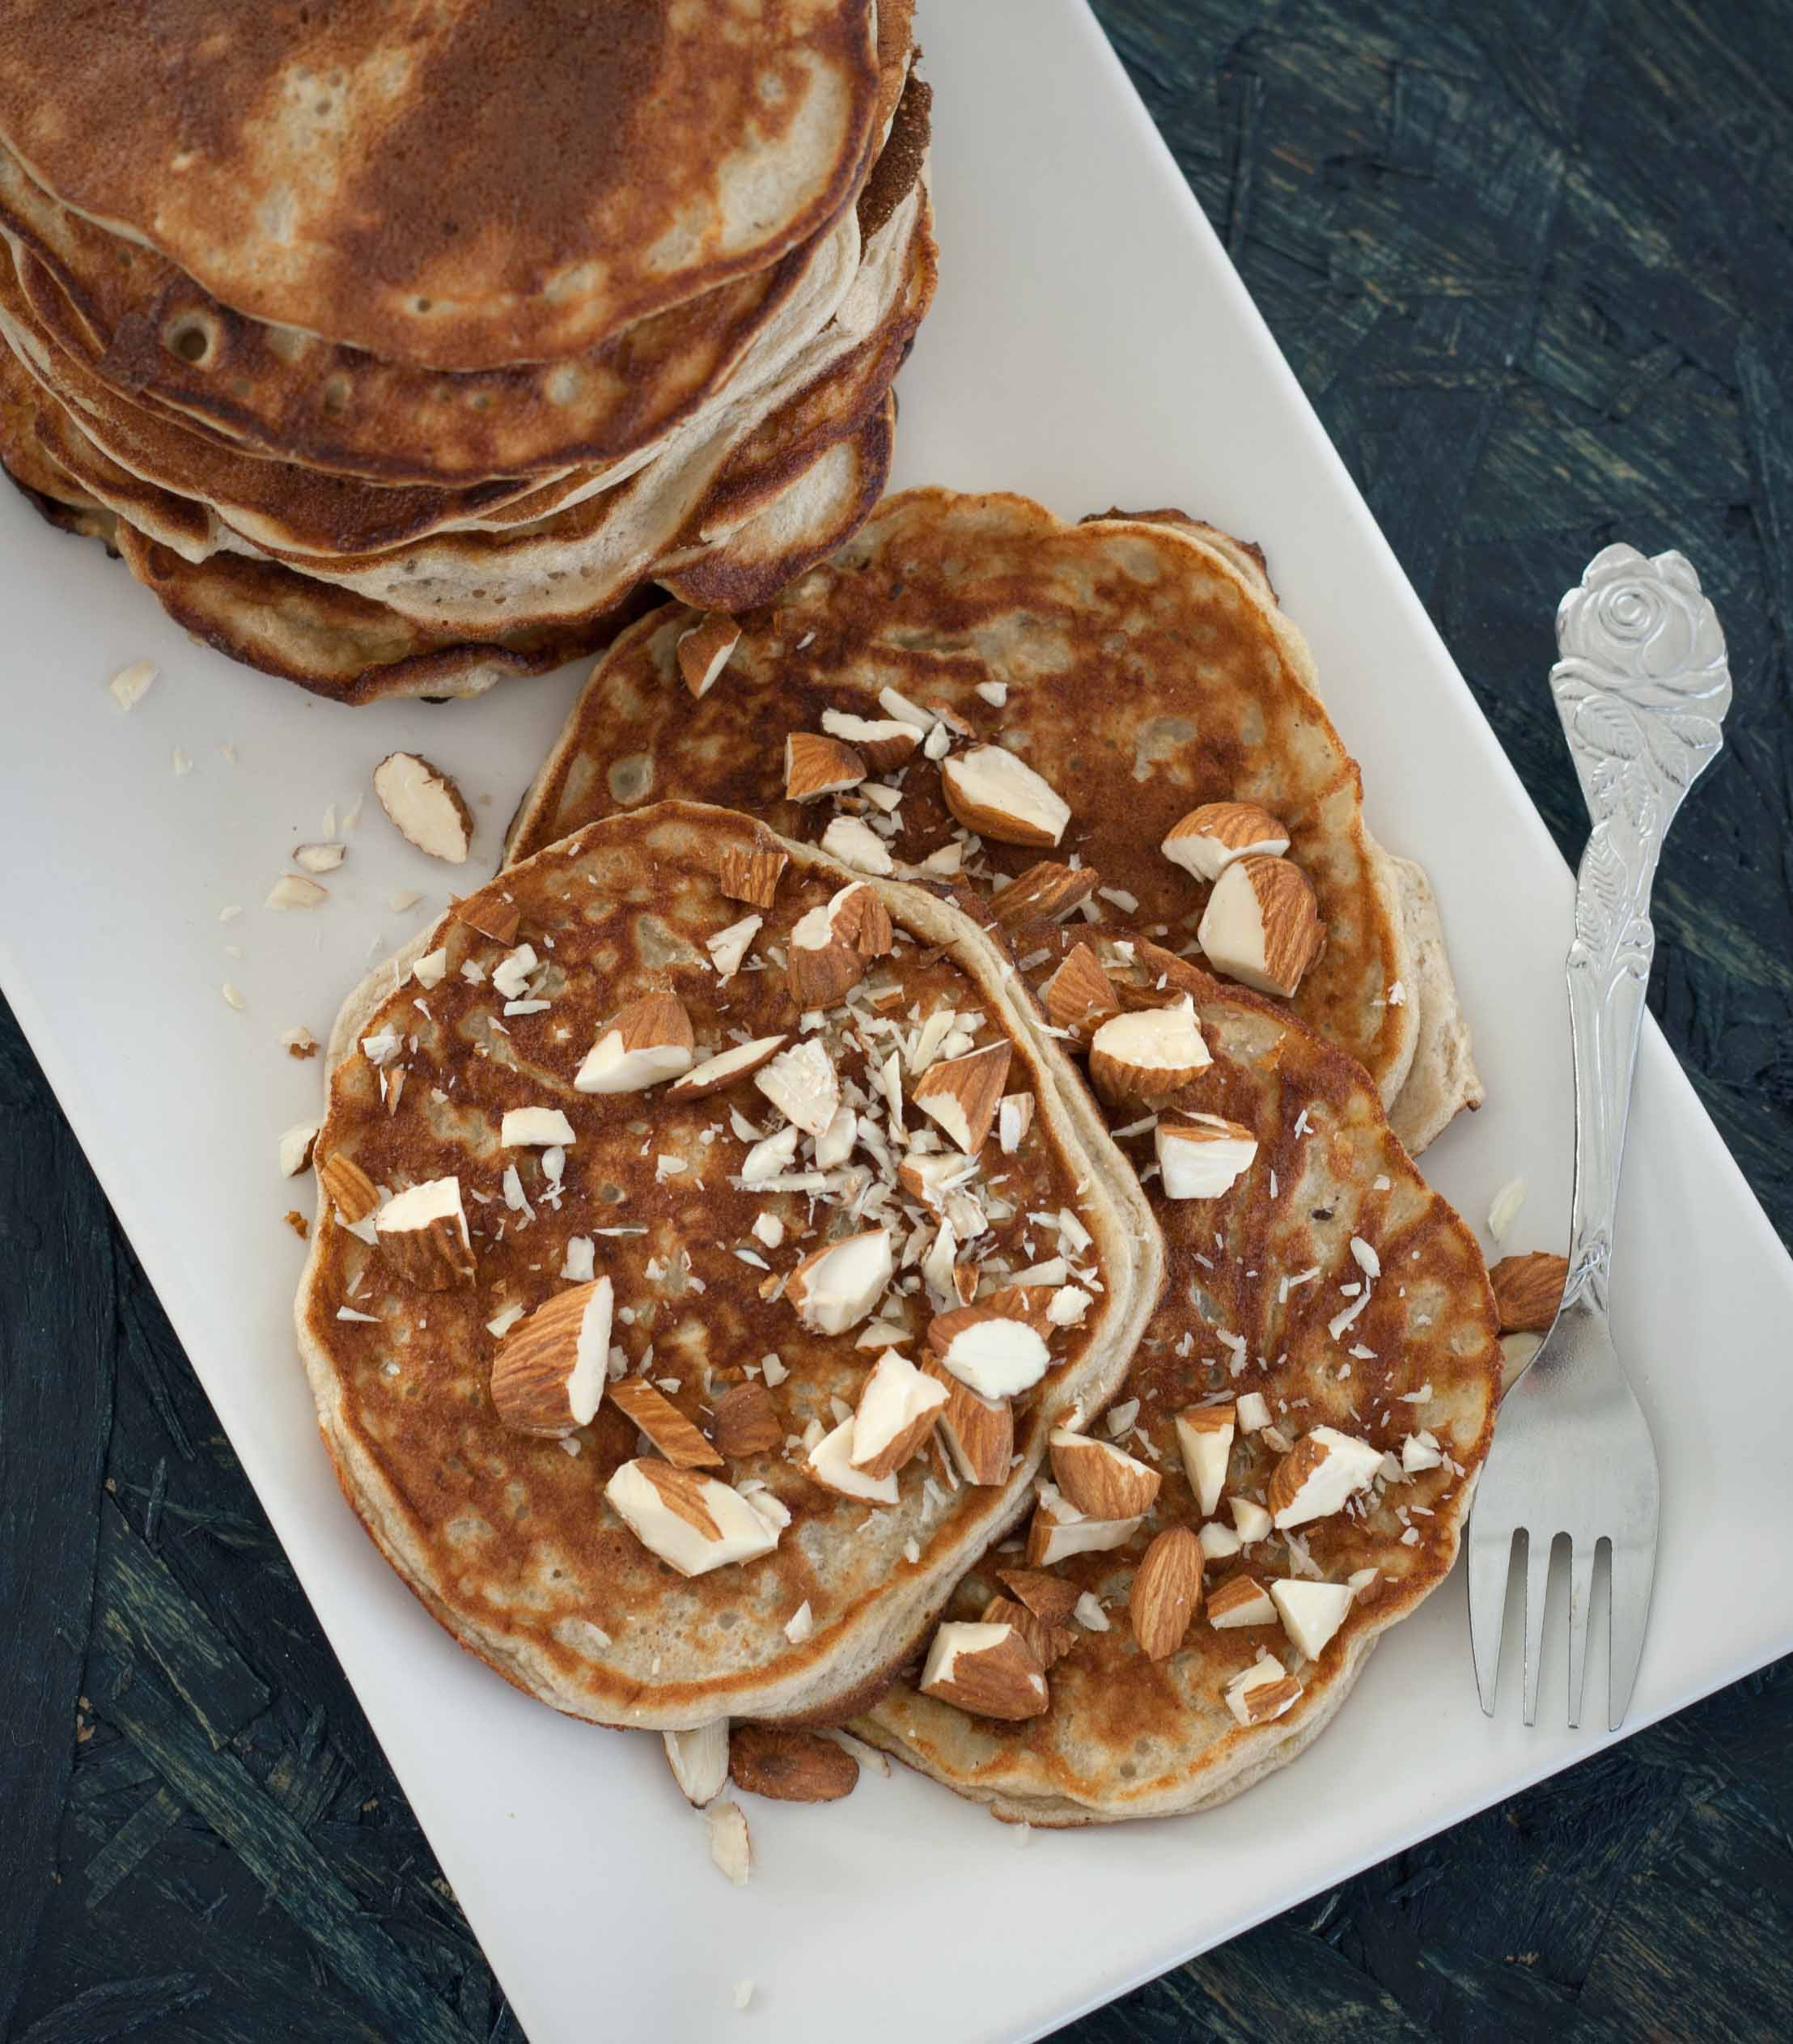 Healthy and easy homemade banana pancakes